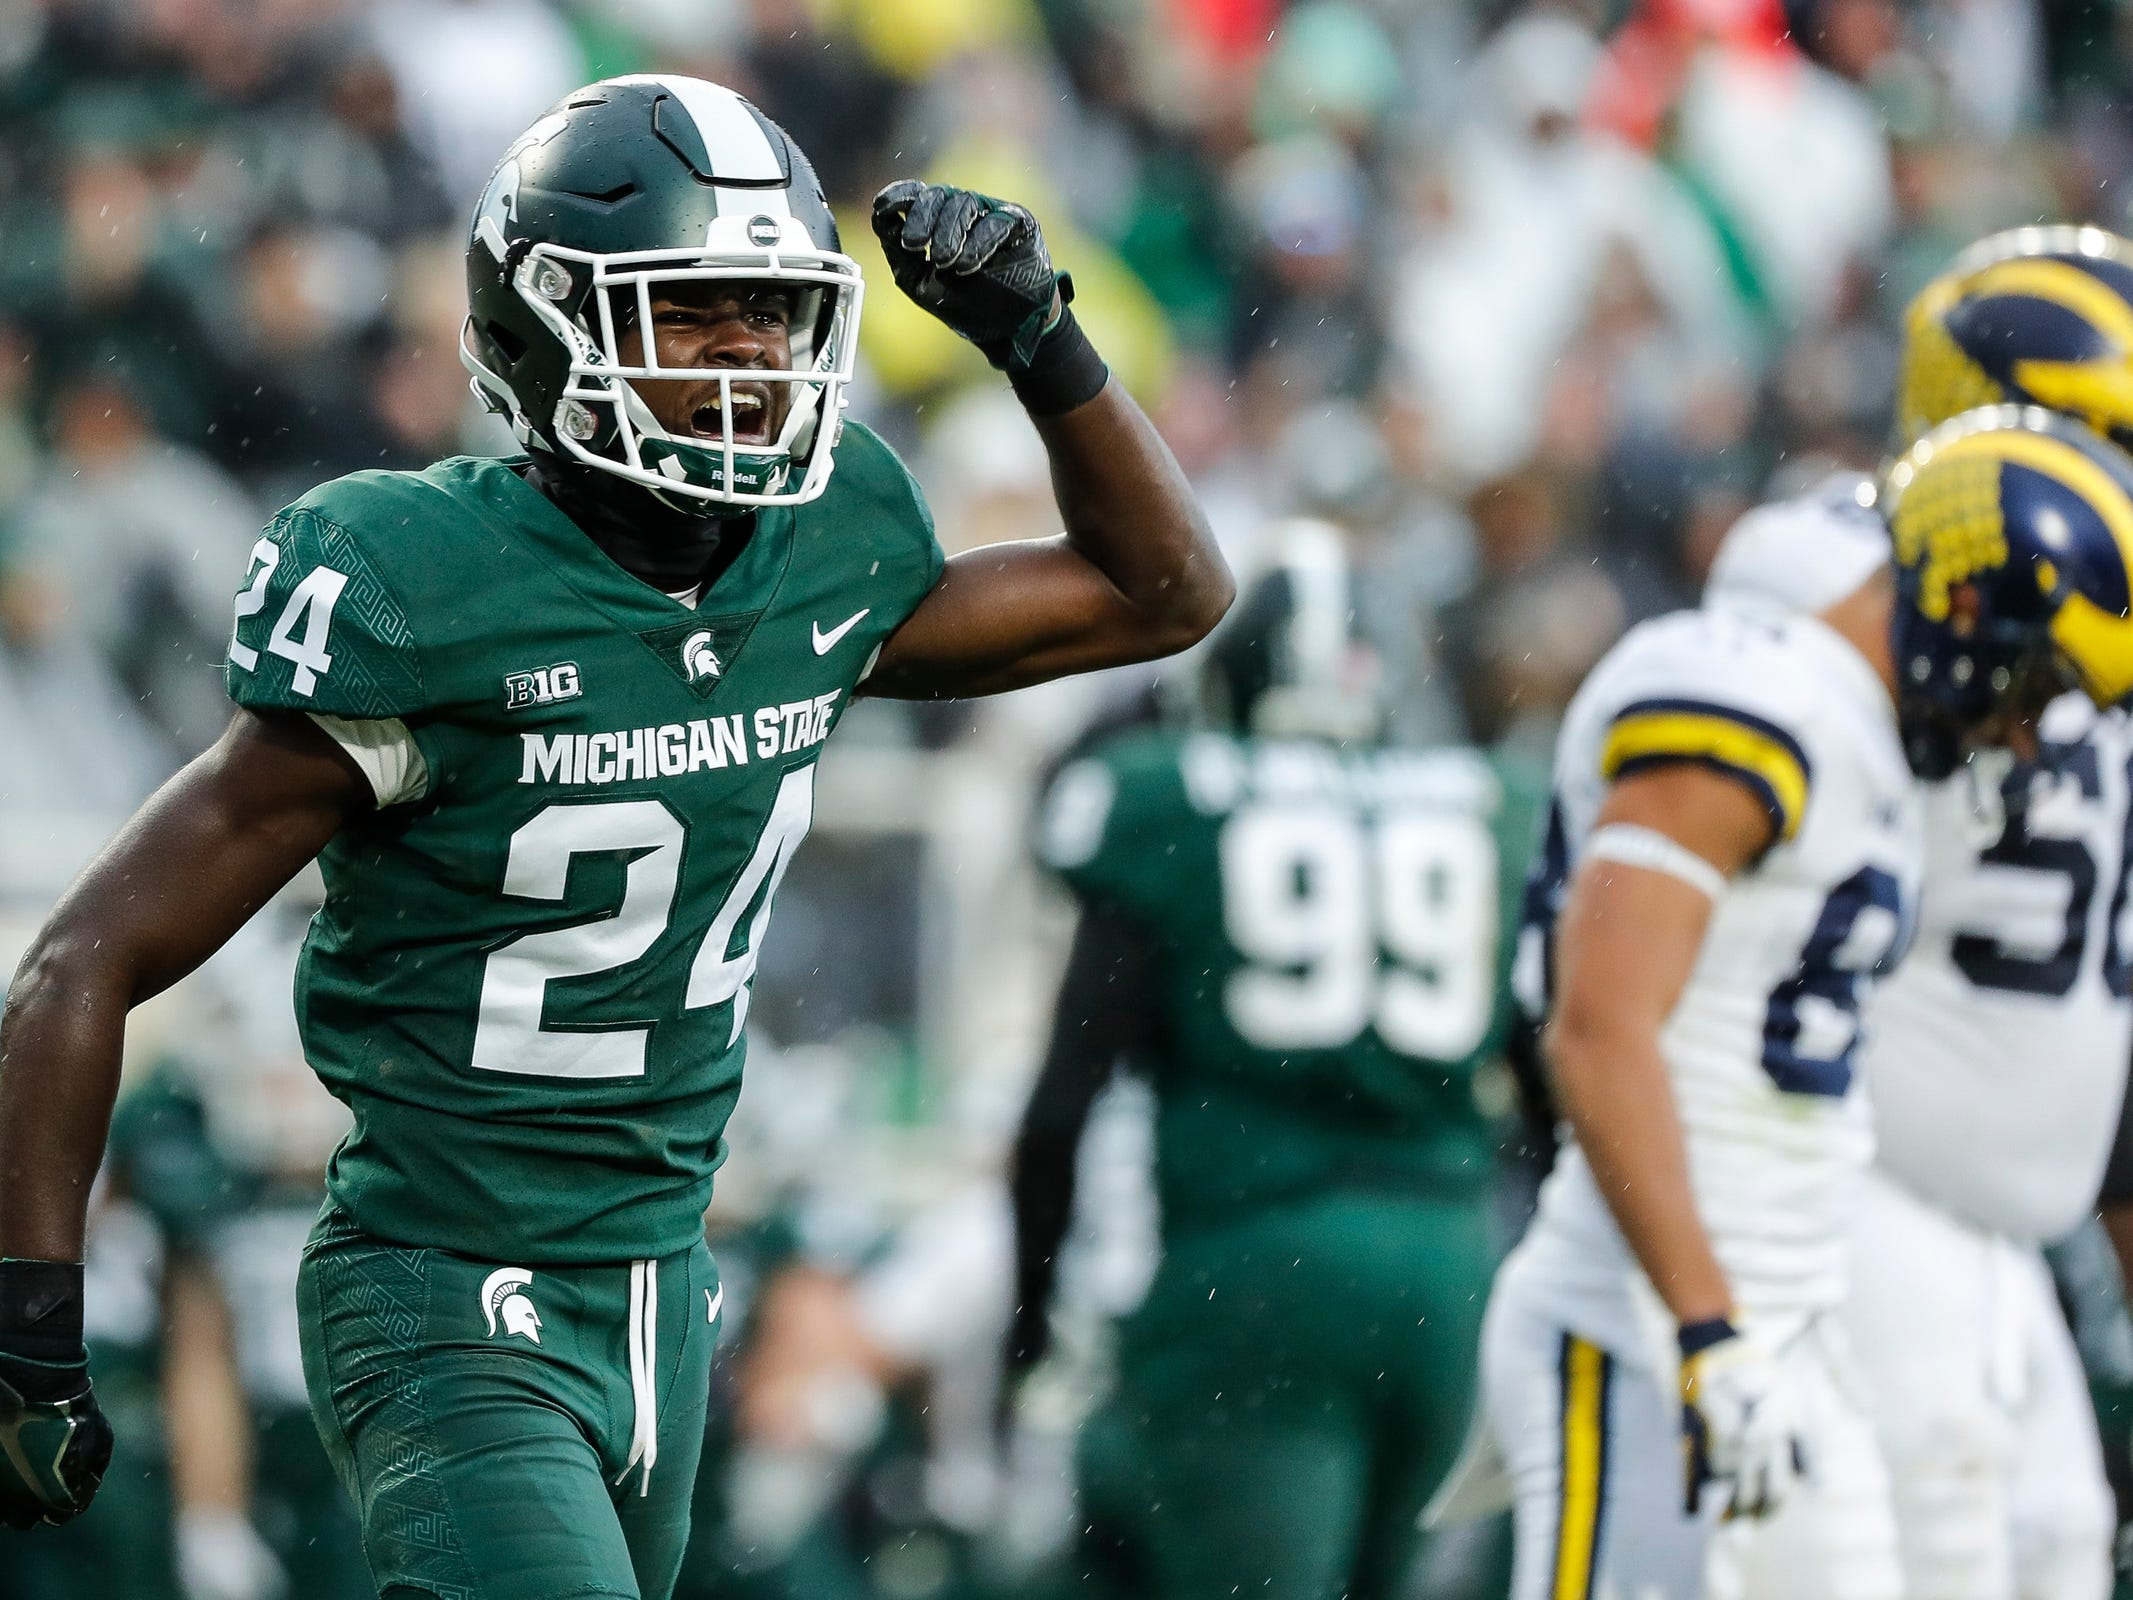 Michigan State cornerback Tre Person celebrates a play against Michigan  during the second half at Spartan Stadium in East Lansing, Saturday, Oct. 20, 2018.